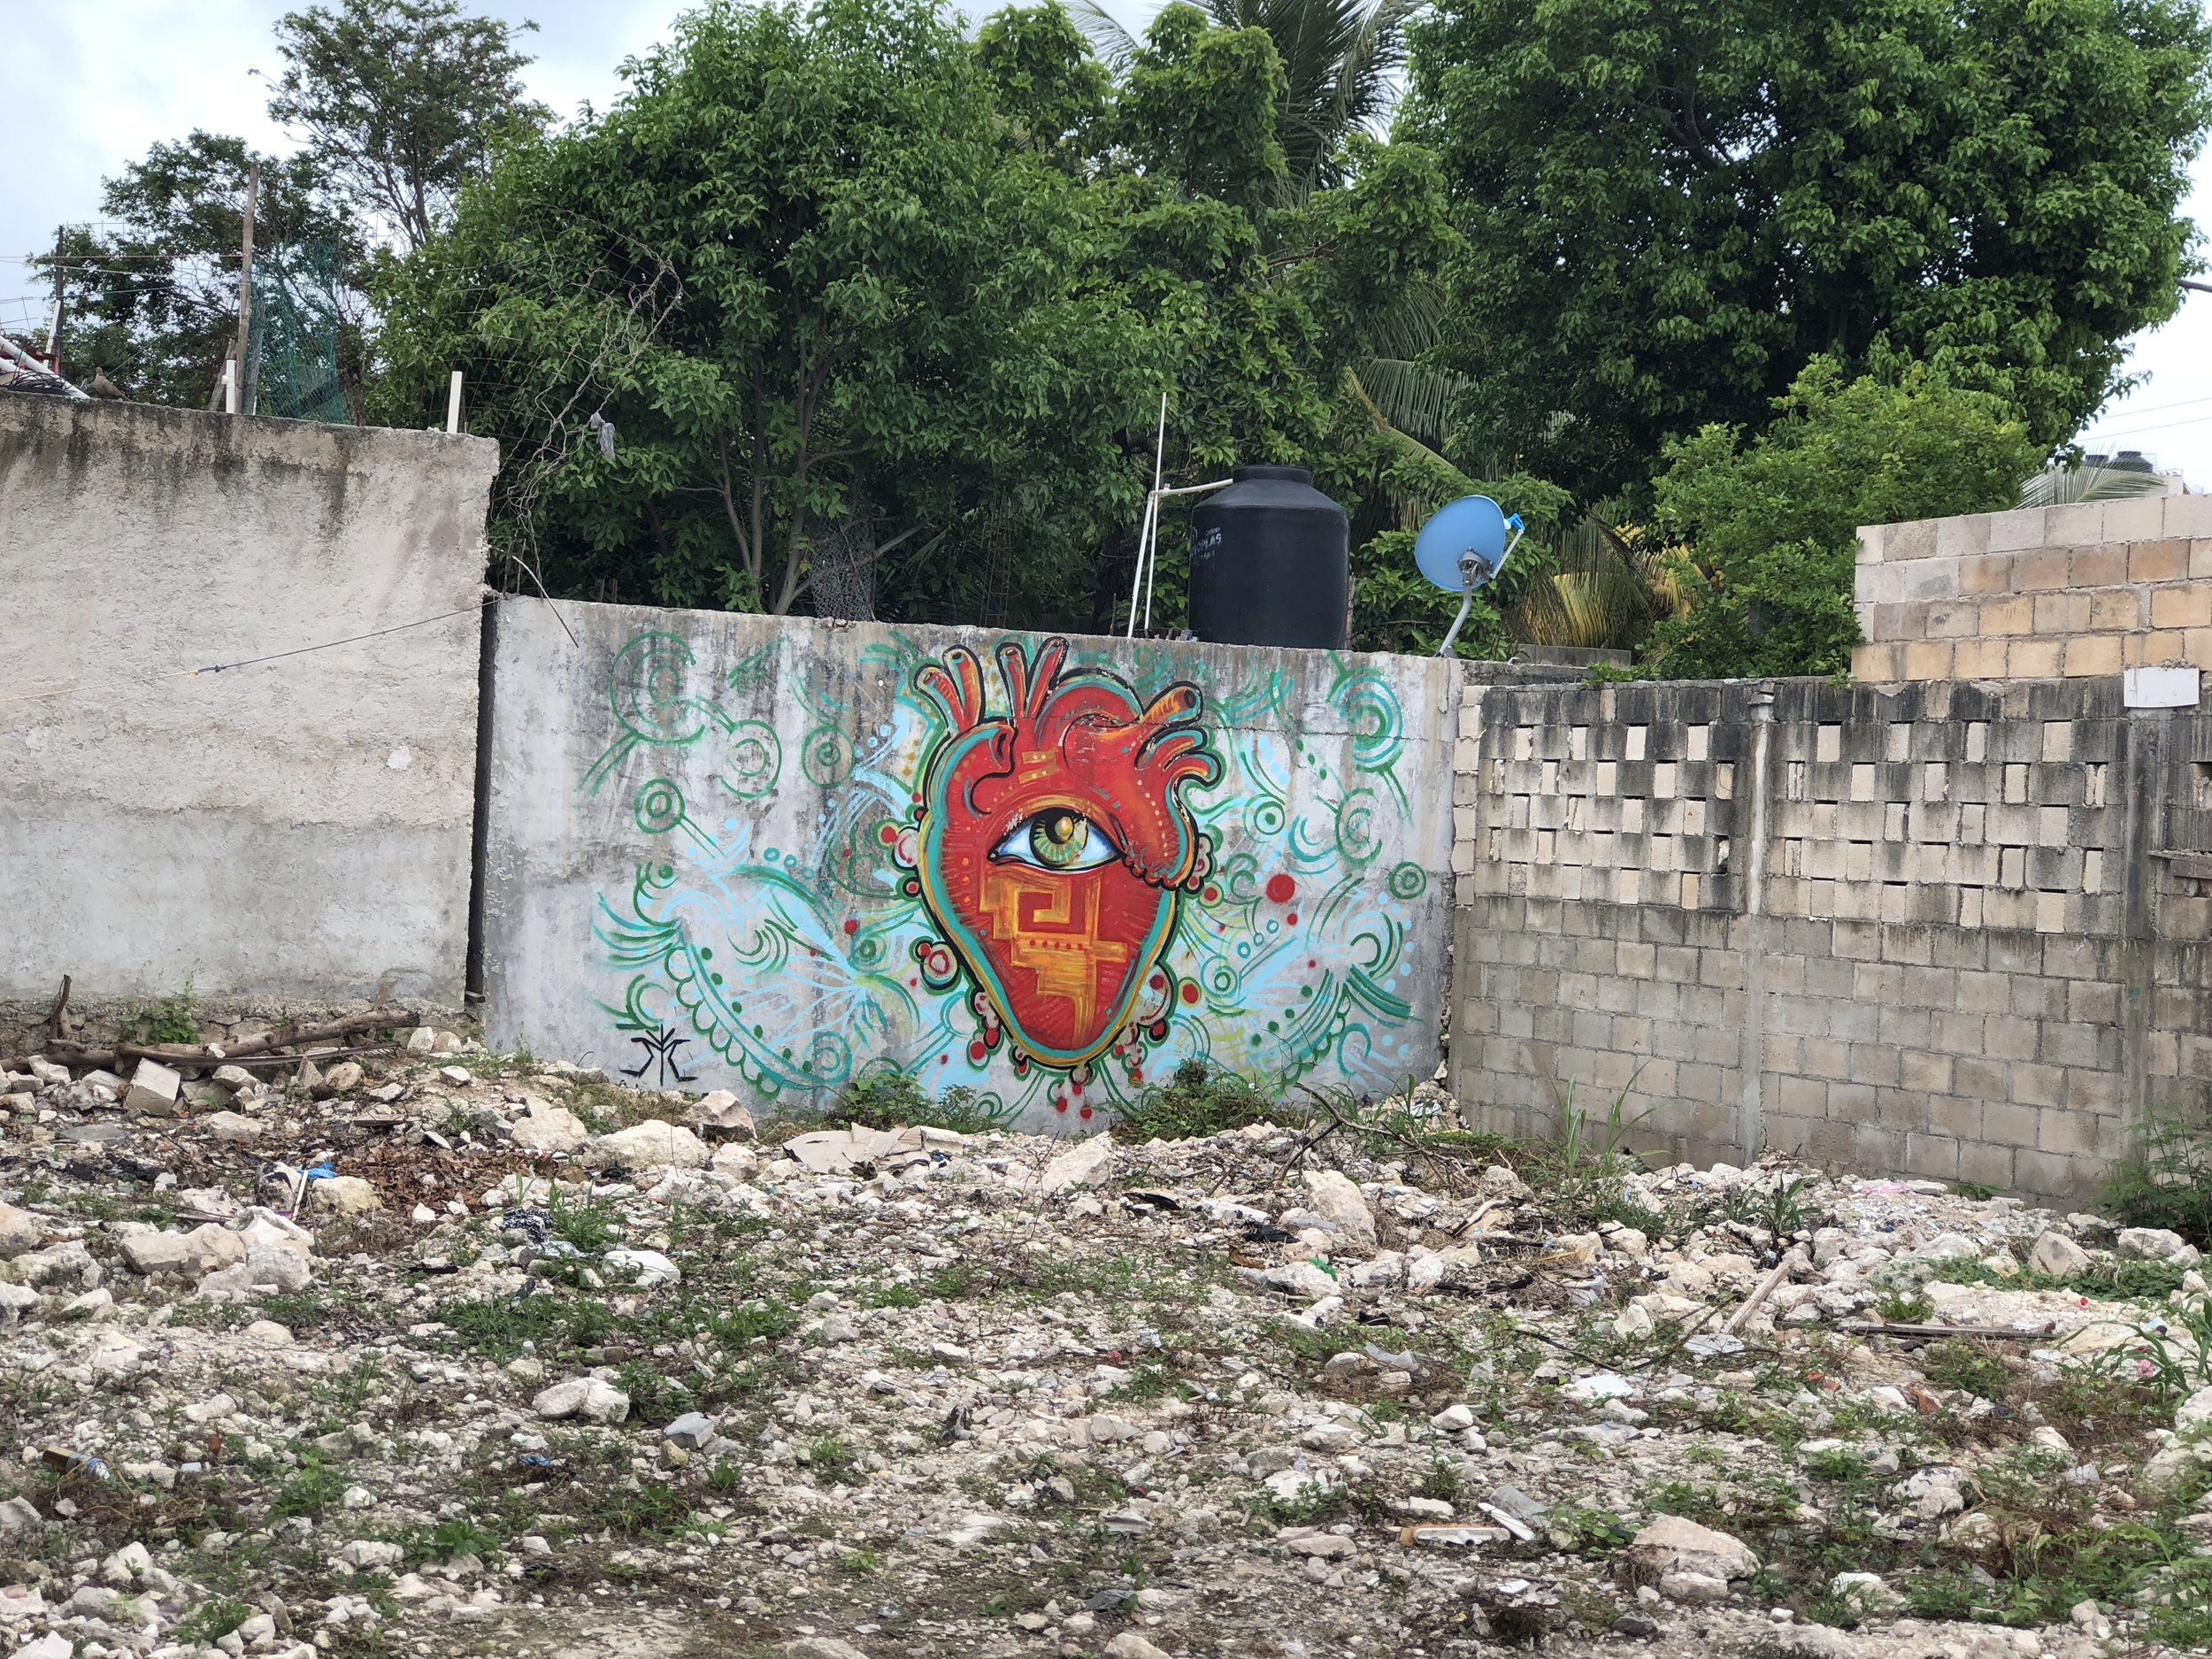 mexican artwork is all over the walls in tulum